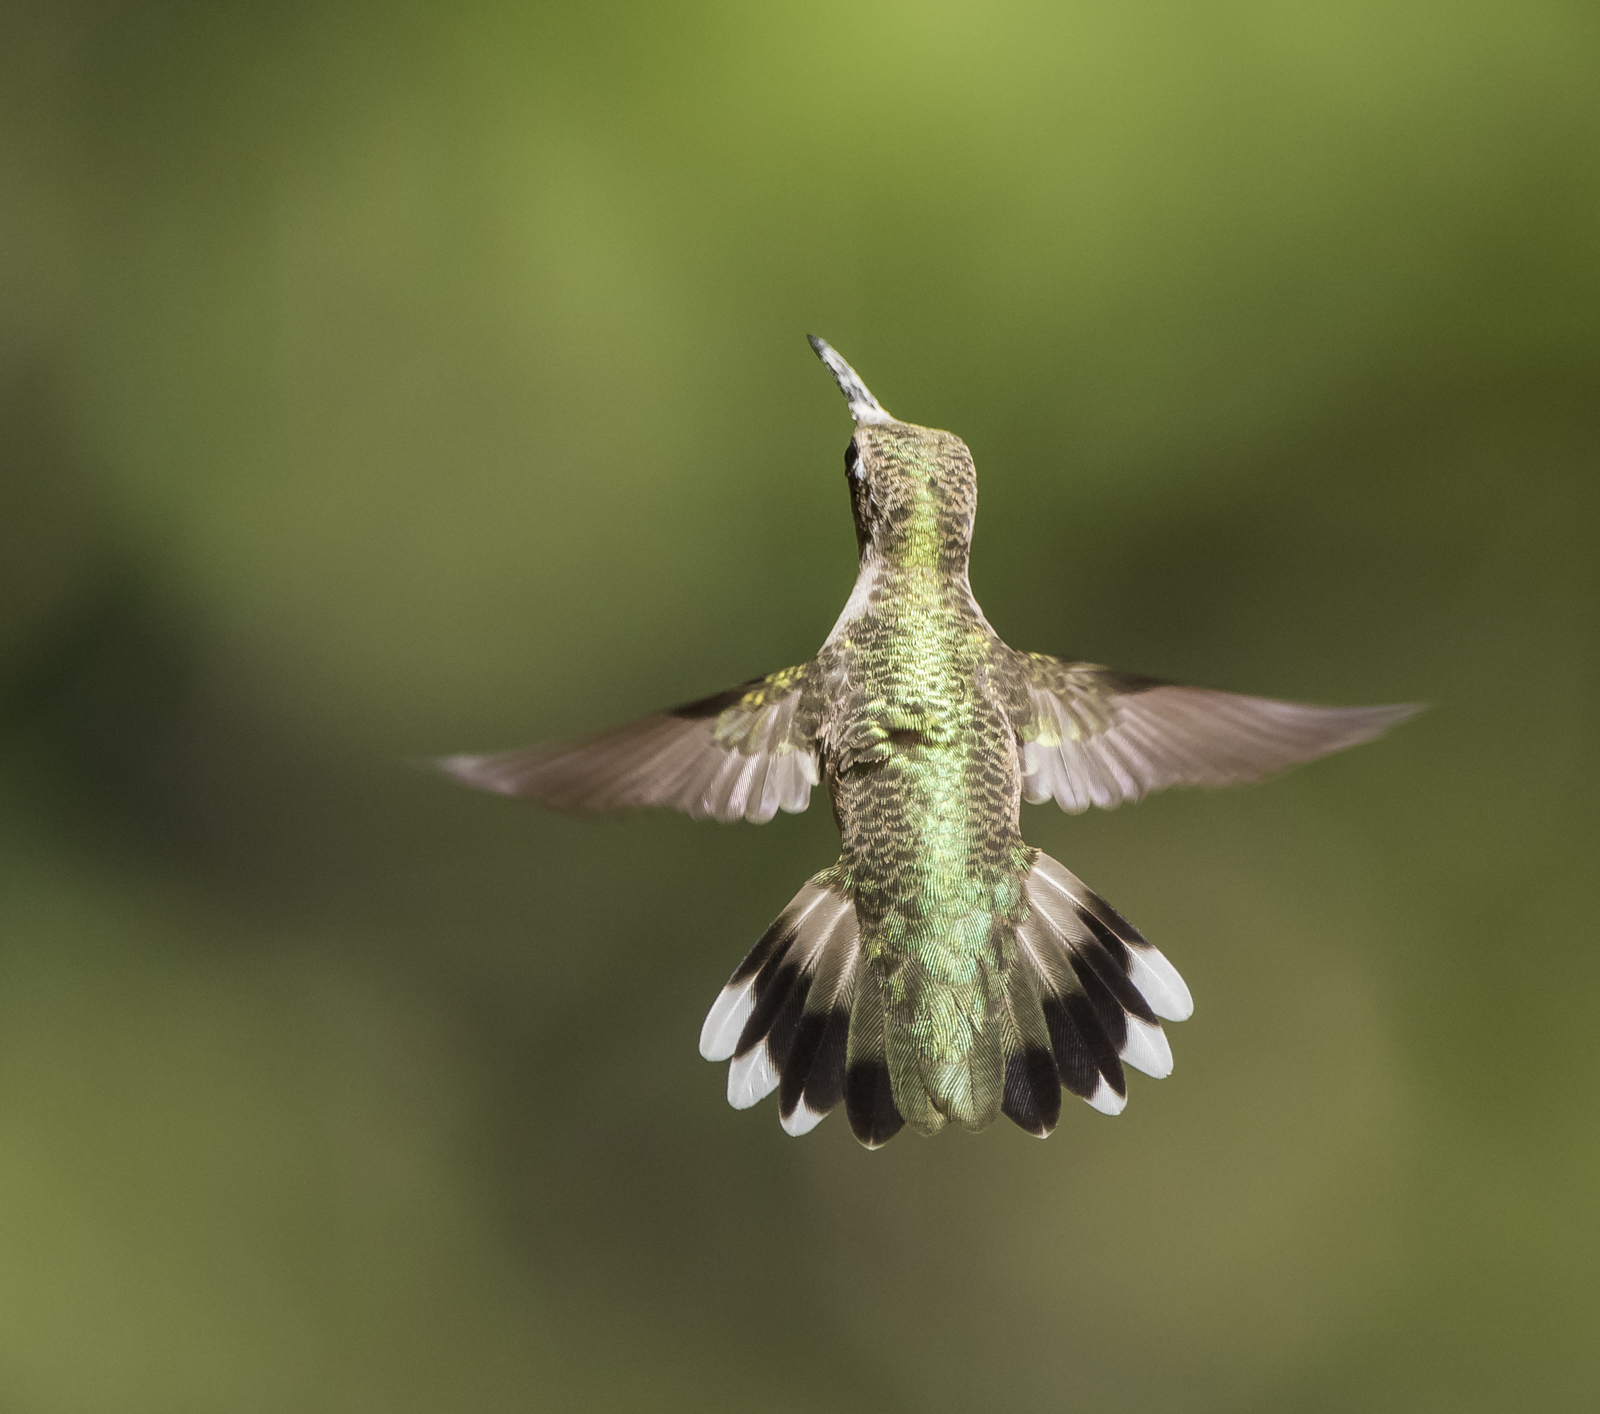 Ruby-throated hummingbird back view